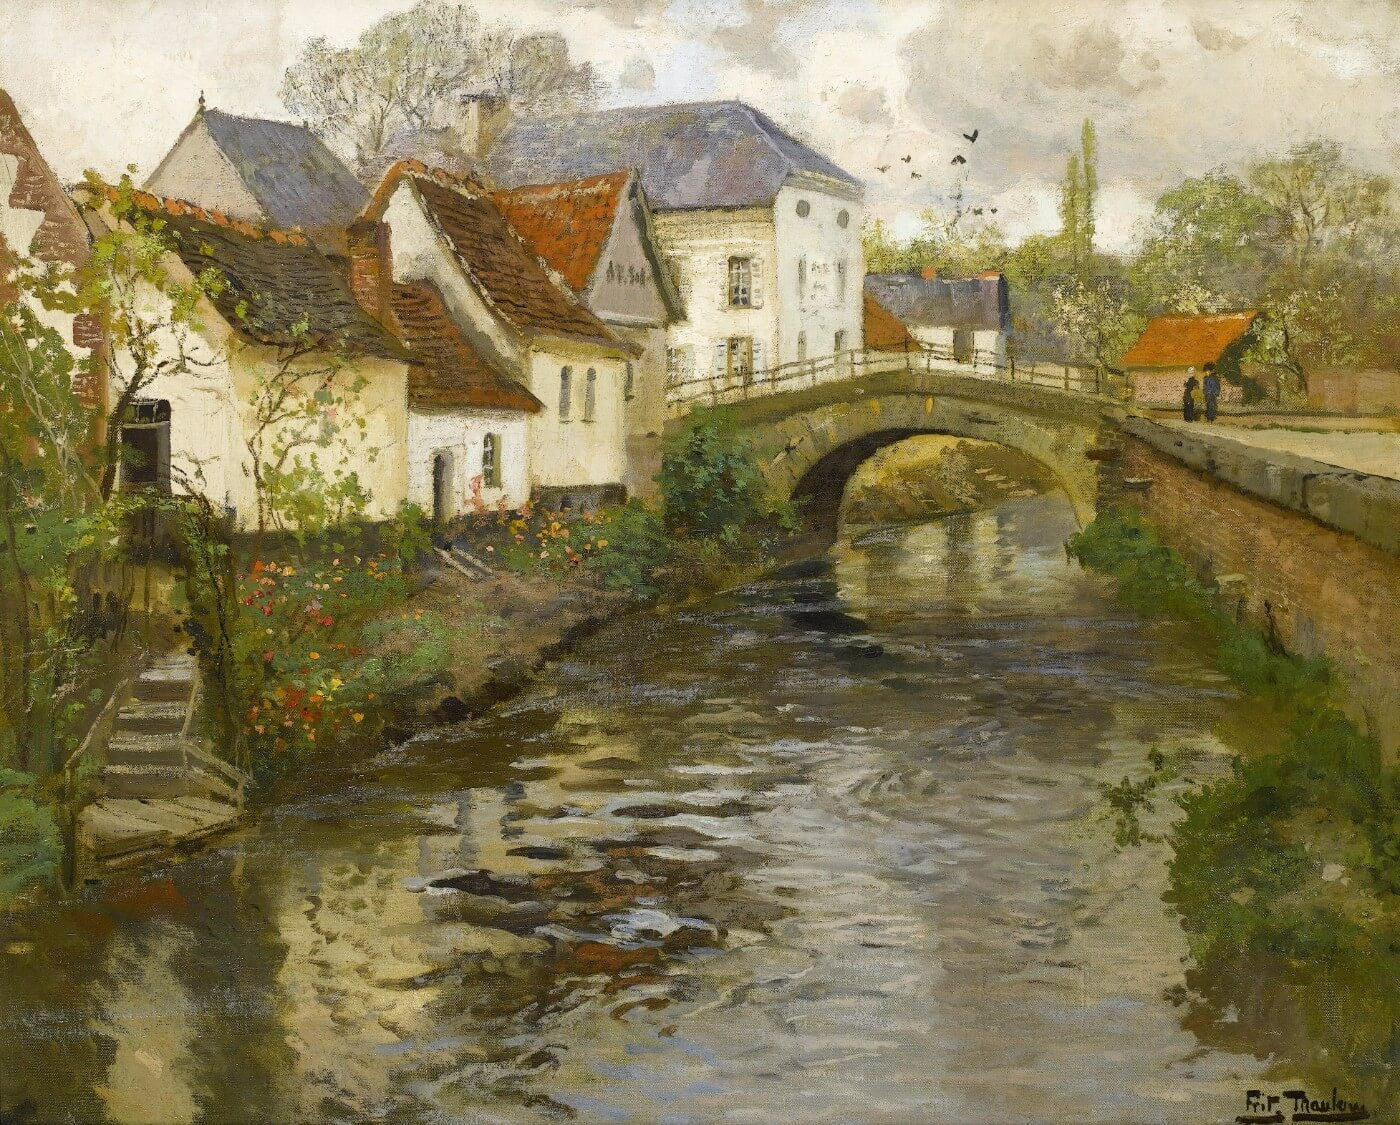 Frits Thaulow | Buy Posters, Frames, Canvas, Digital Art & Large Size Prints Of The Famous Modern Master's Artworks